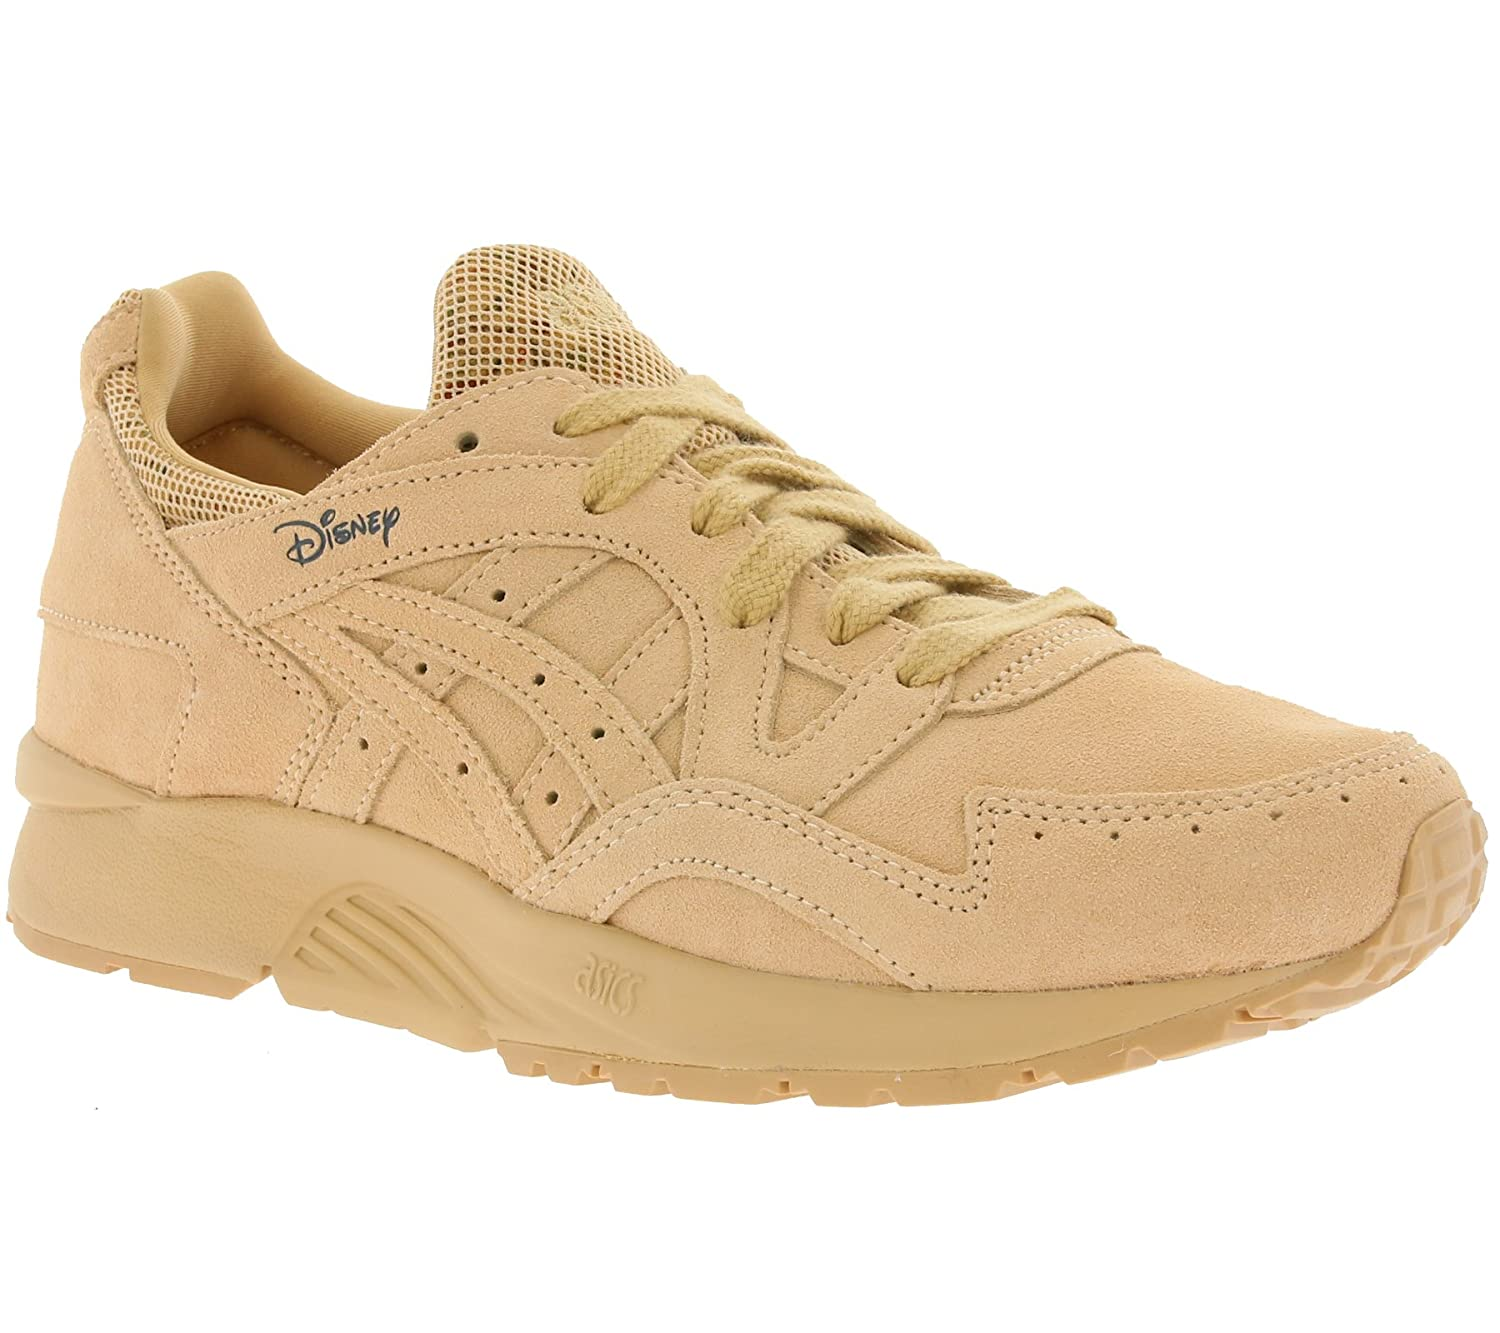 ASICS Gel-Lyte V Beauty and The Beast Pack Schuhe Damen Echtleder-Turnschuhe Turnschuhe Orange H70QJ 1717